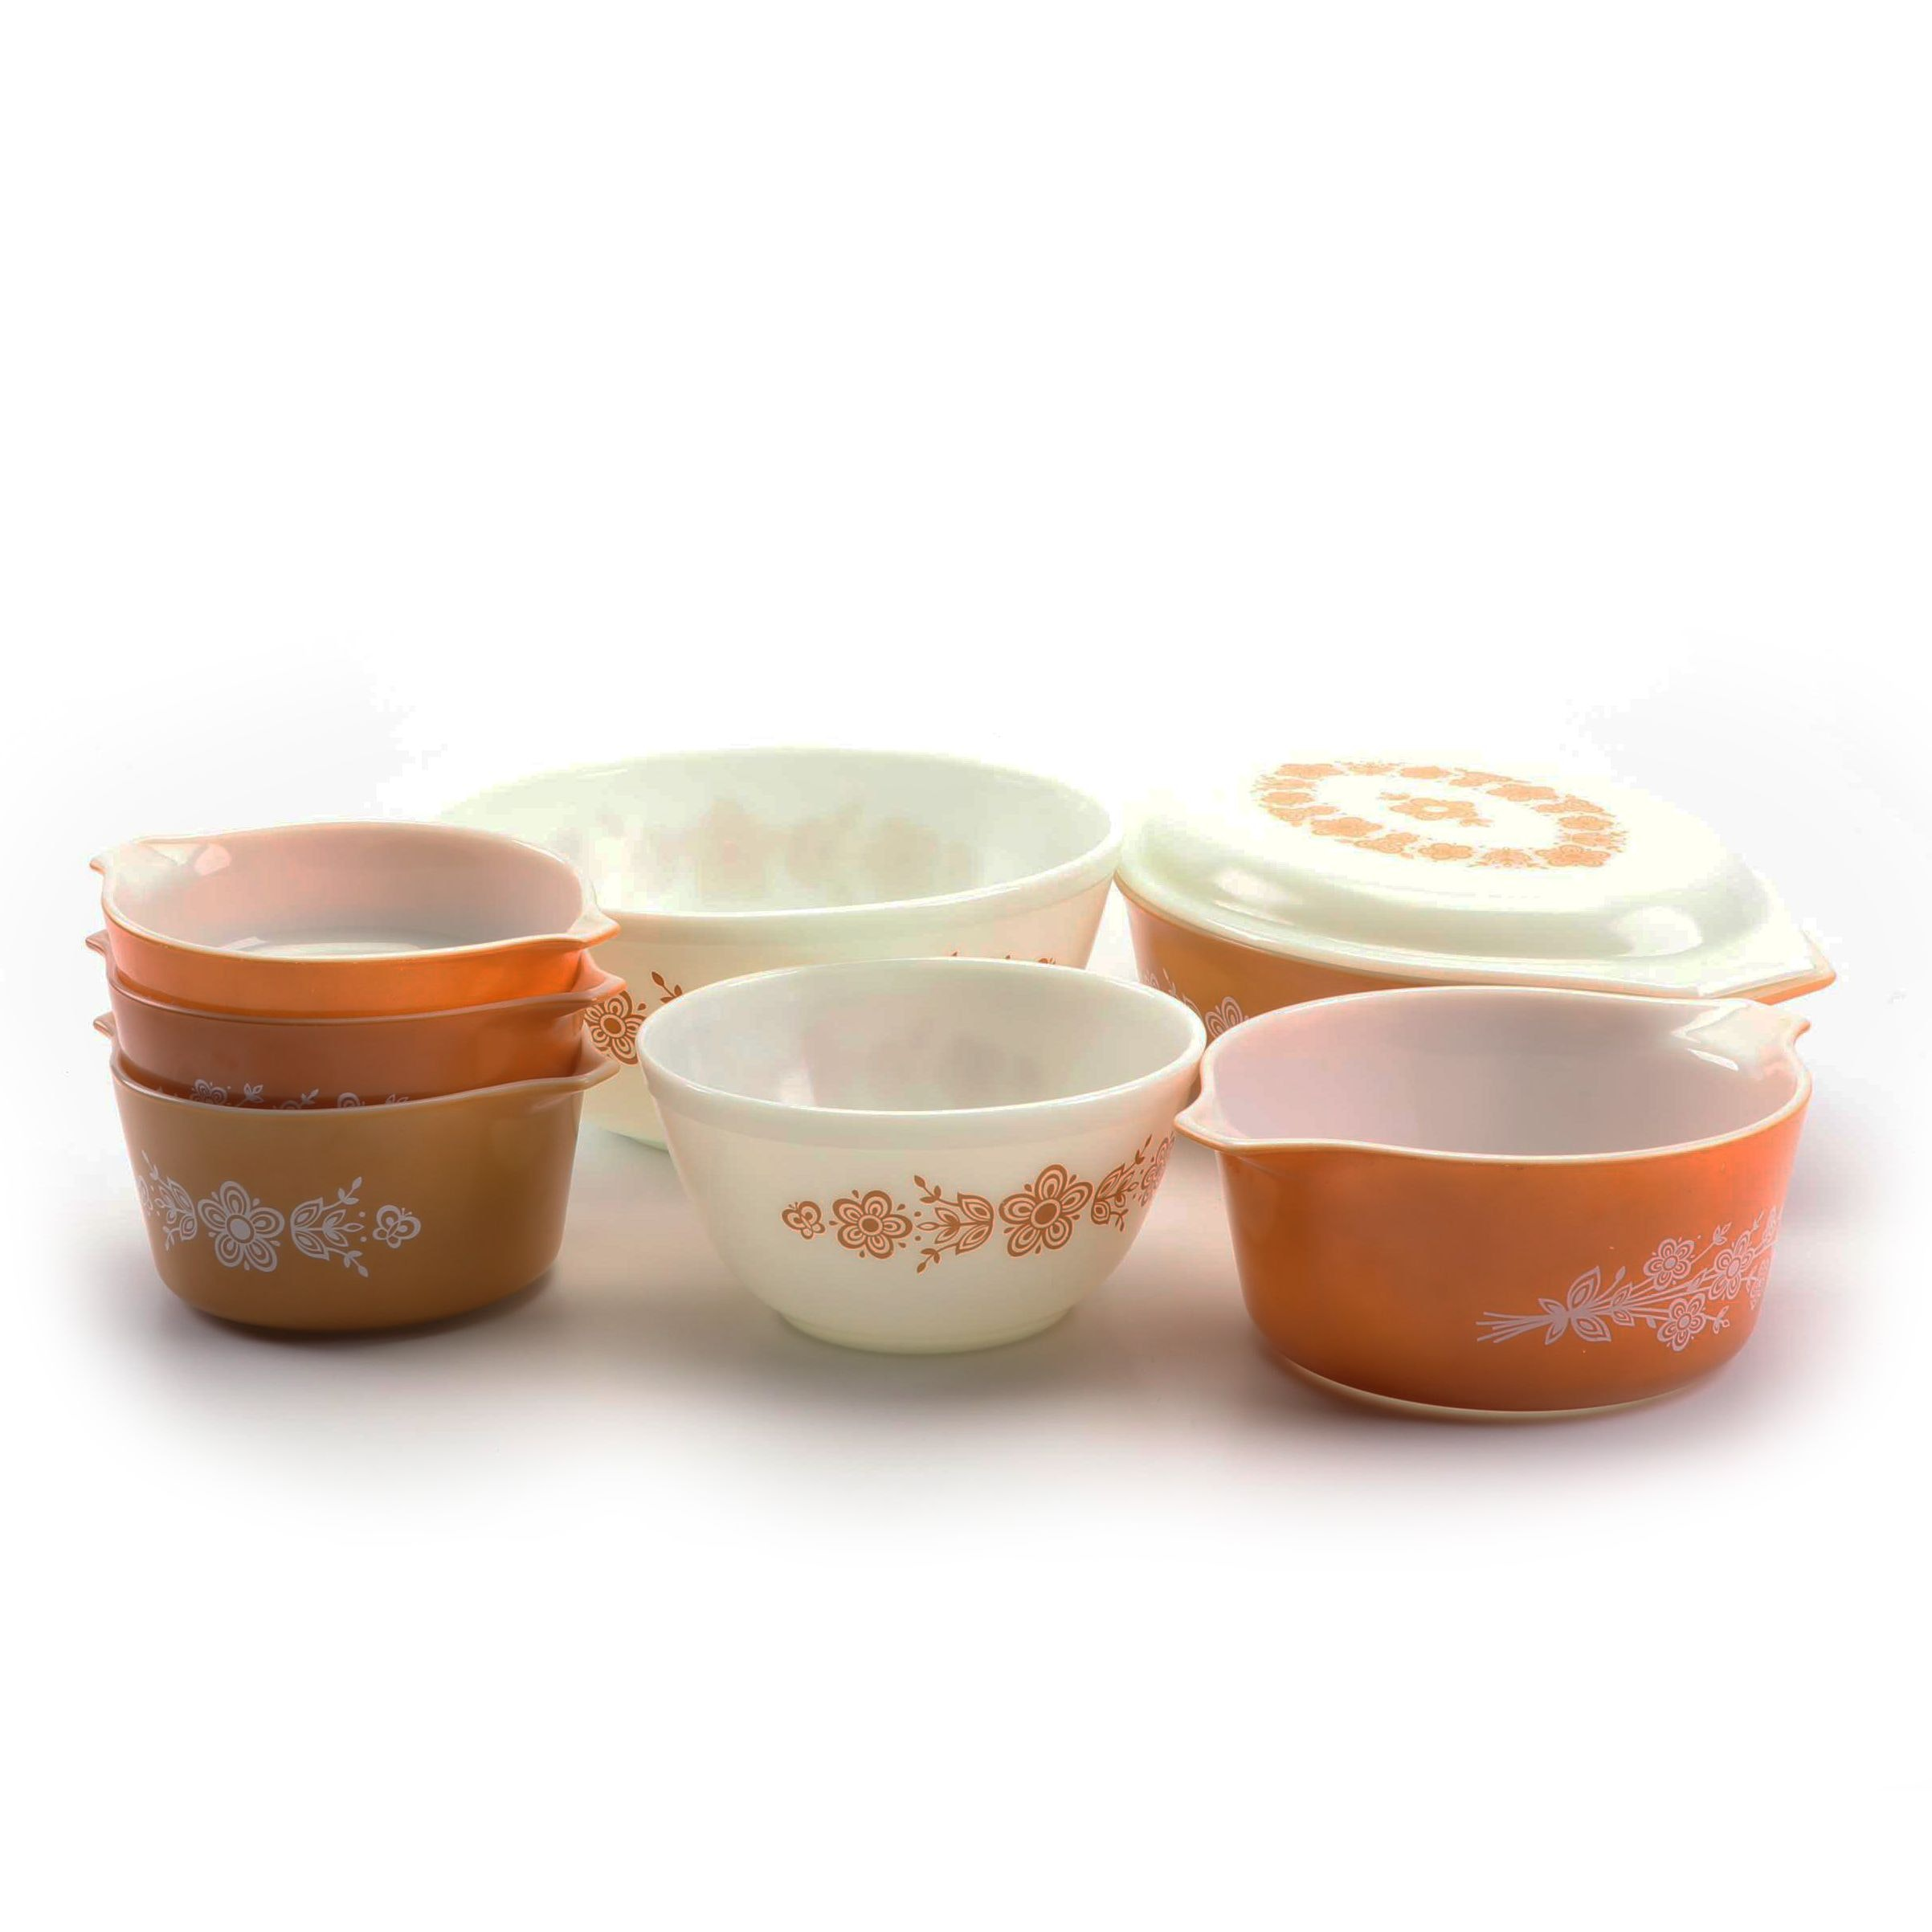 "Pyrex ""Butterfly Gold"" Glass Bakeware and Mixing Bowls, 1972-78"